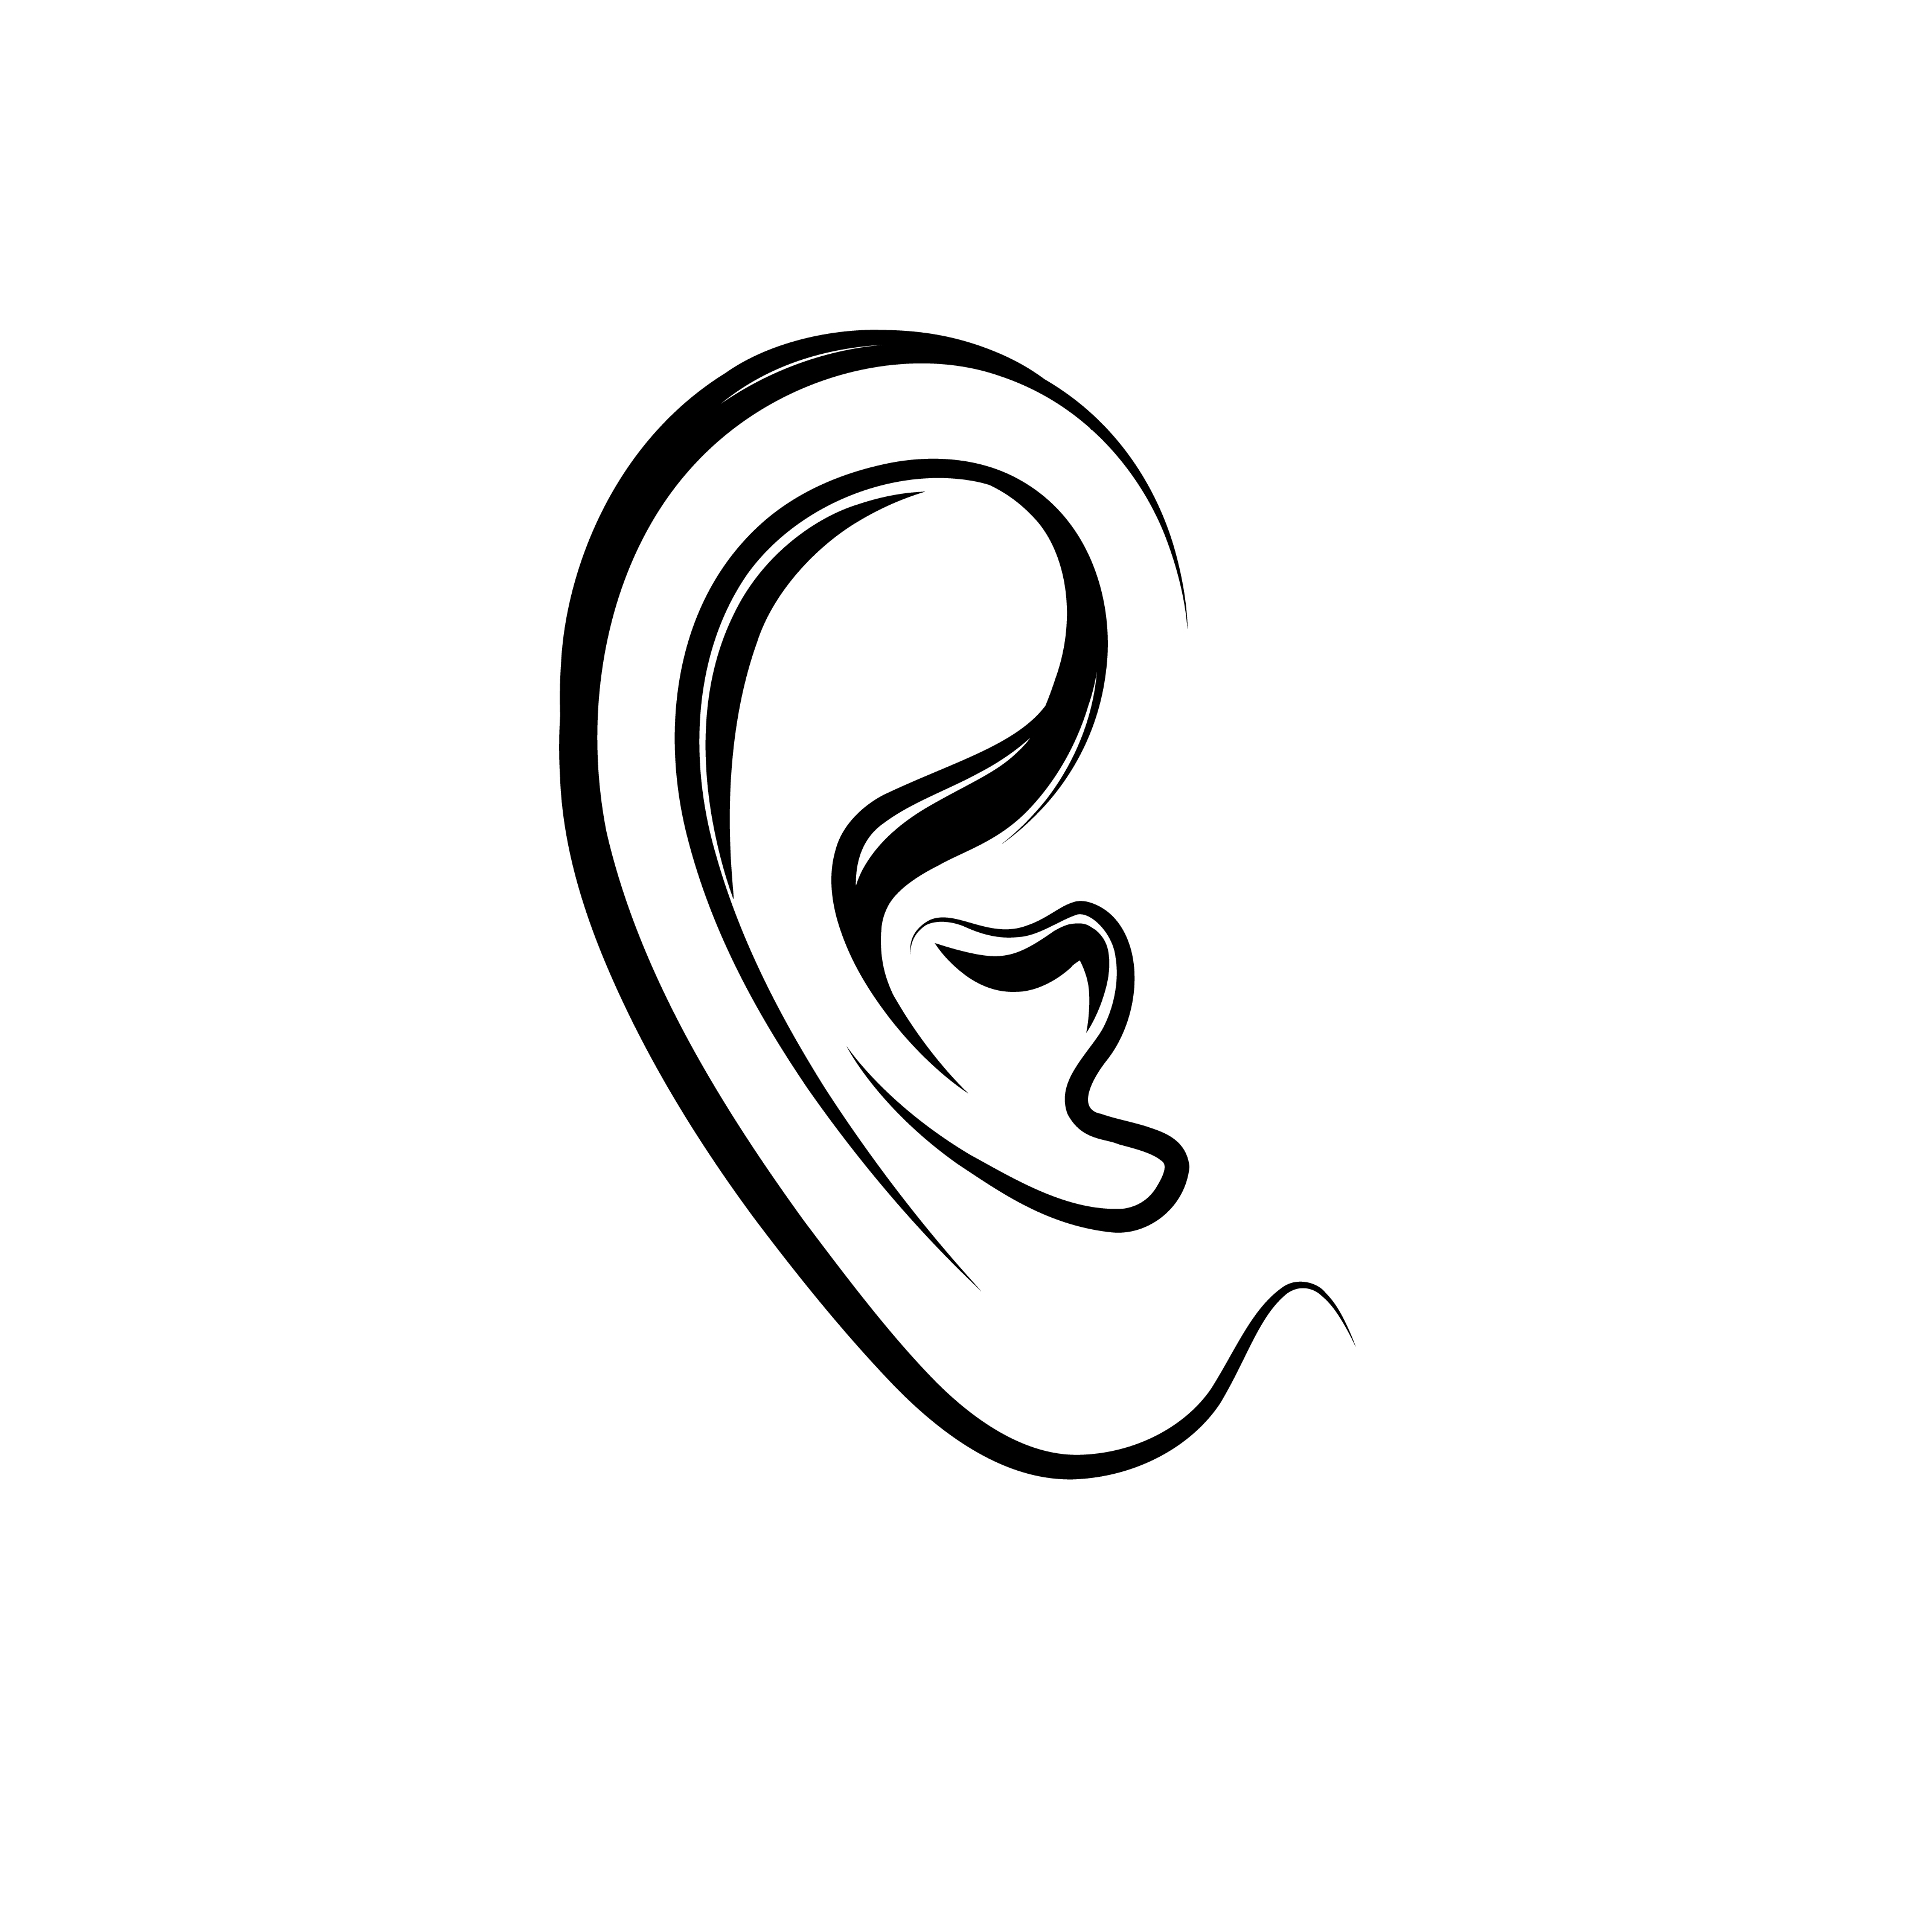 Ear Engraving Icon Human Ear Isolated Over White